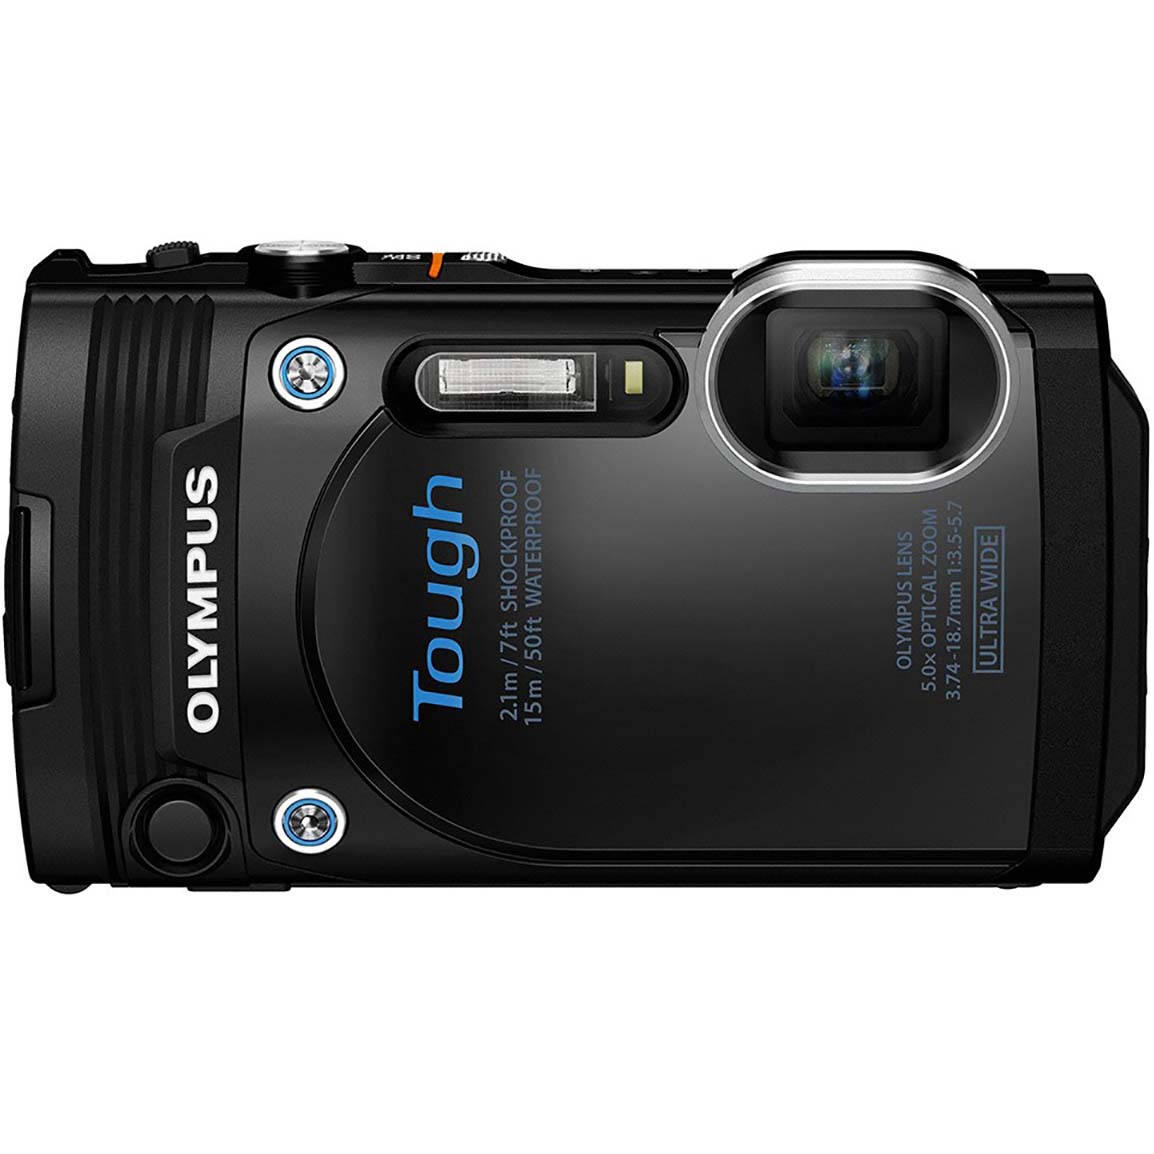 CAMARA OLYMPUS TOUGH TG860 BLACK